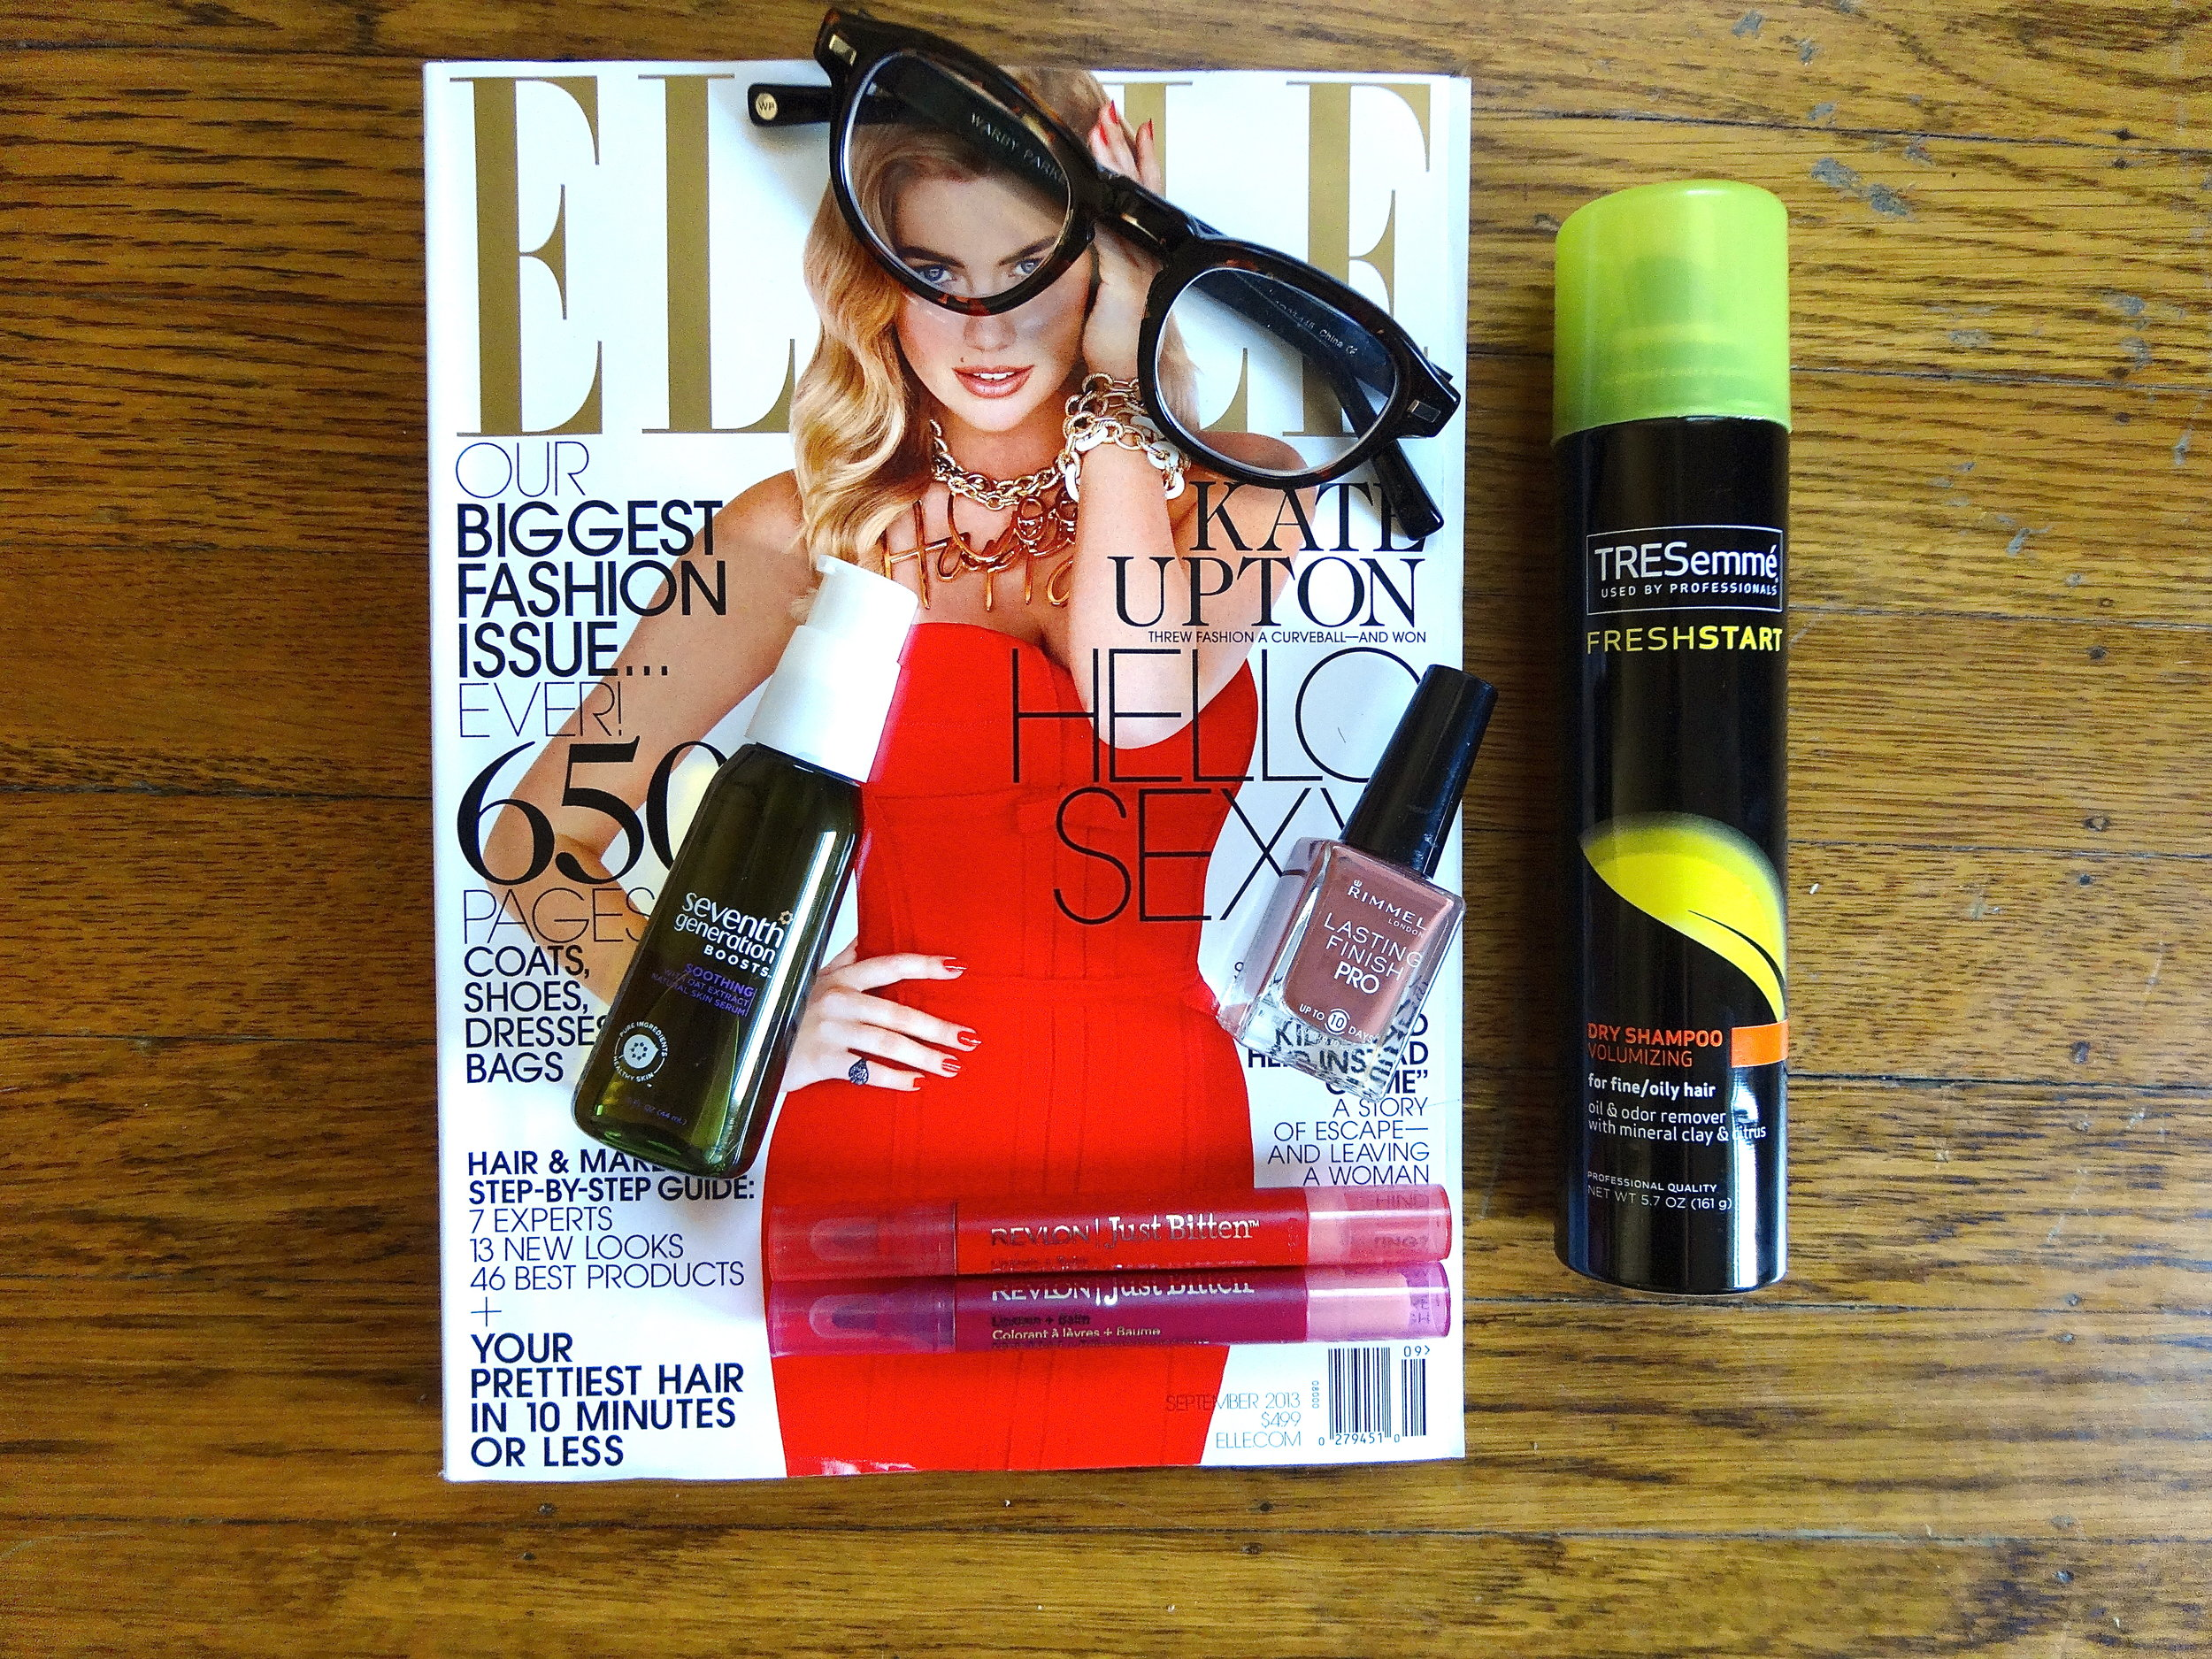 L to R: September Issue of Elle Magazine, Warby Parker Glasses, Tresemme Dry Shamoo, Rimmel Lasting Finish Nail Polish, Seventh Generation Boost Serum.